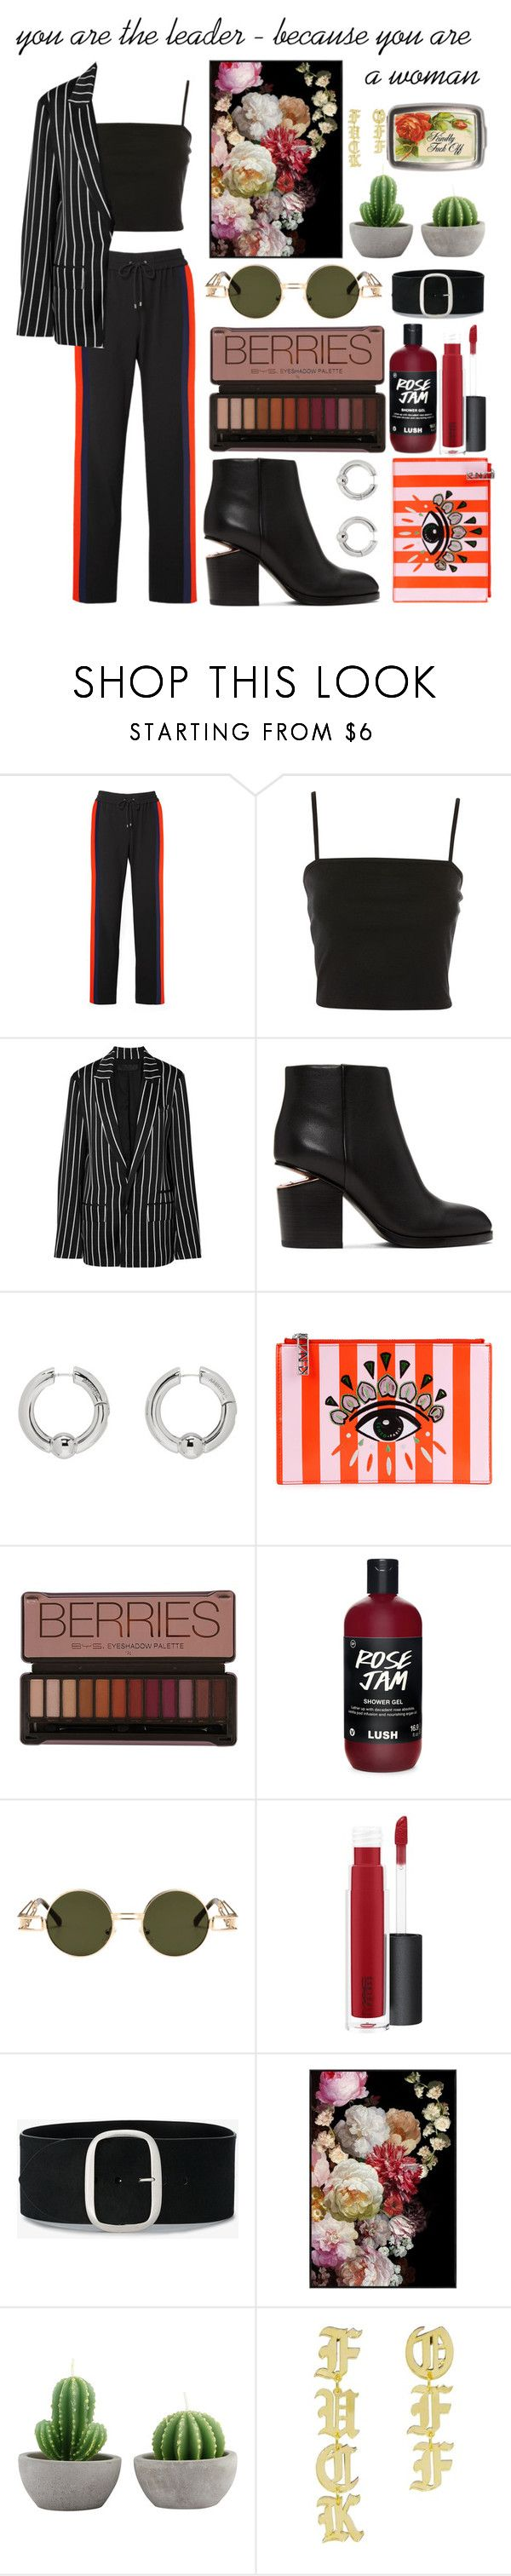 """Untitled #103"" by yuliaboycova ❤ liked on Polyvore featuring Kenzo, Topshop, Haider Ackermann, Alexander Wang, AMBUSH, John Lewis and Isabel Marant"